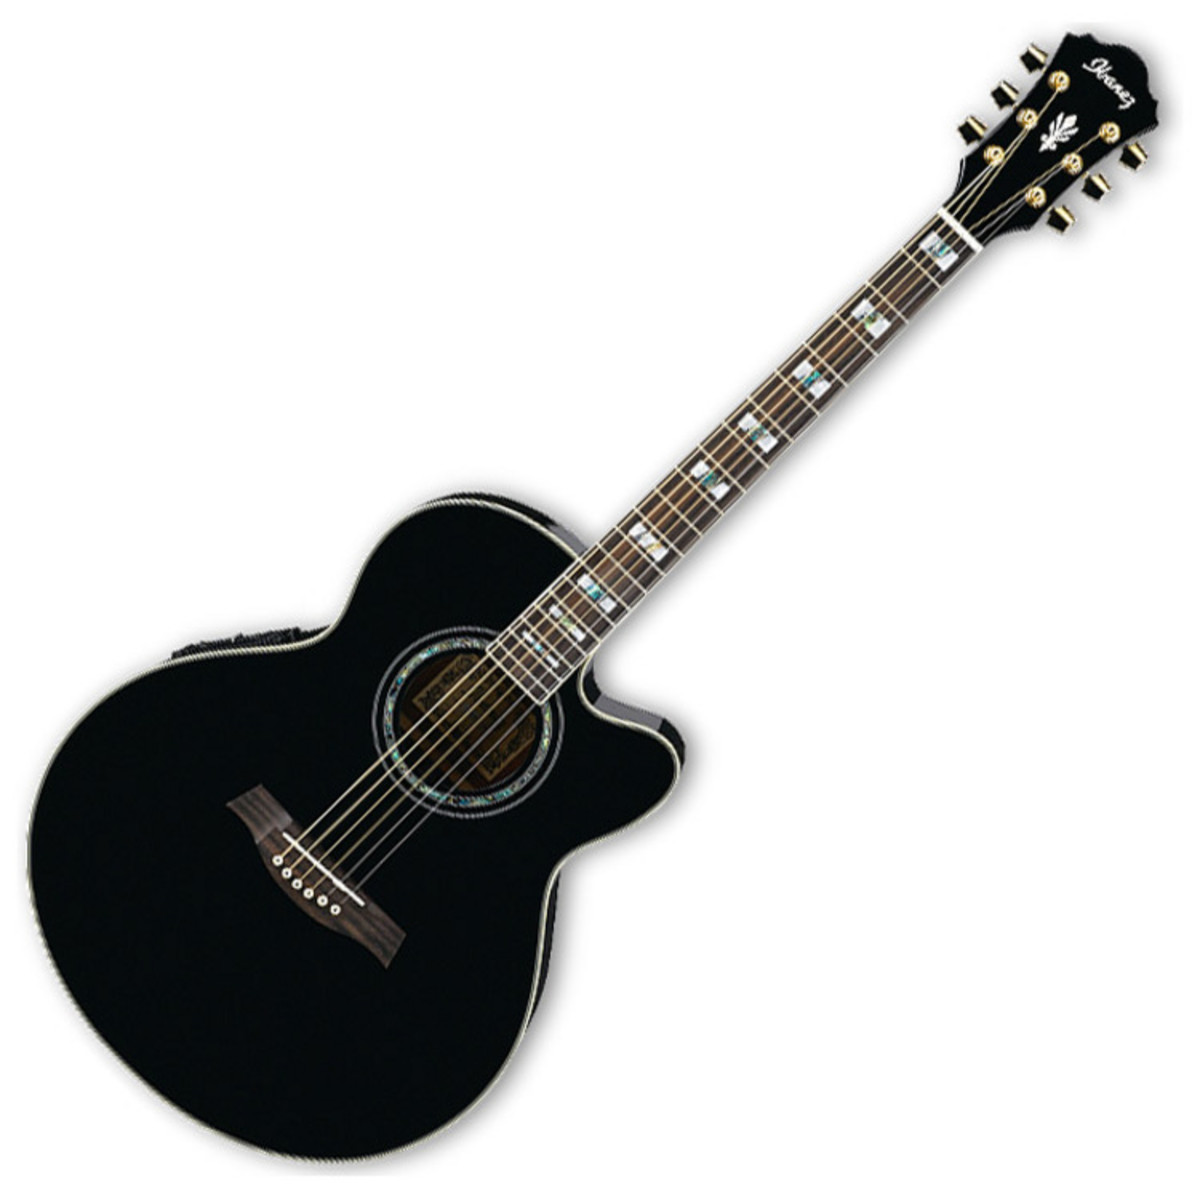 ibanez ael30se guitare electro acoustique noir ex d mo. Black Bedroom Furniture Sets. Home Design Ideas